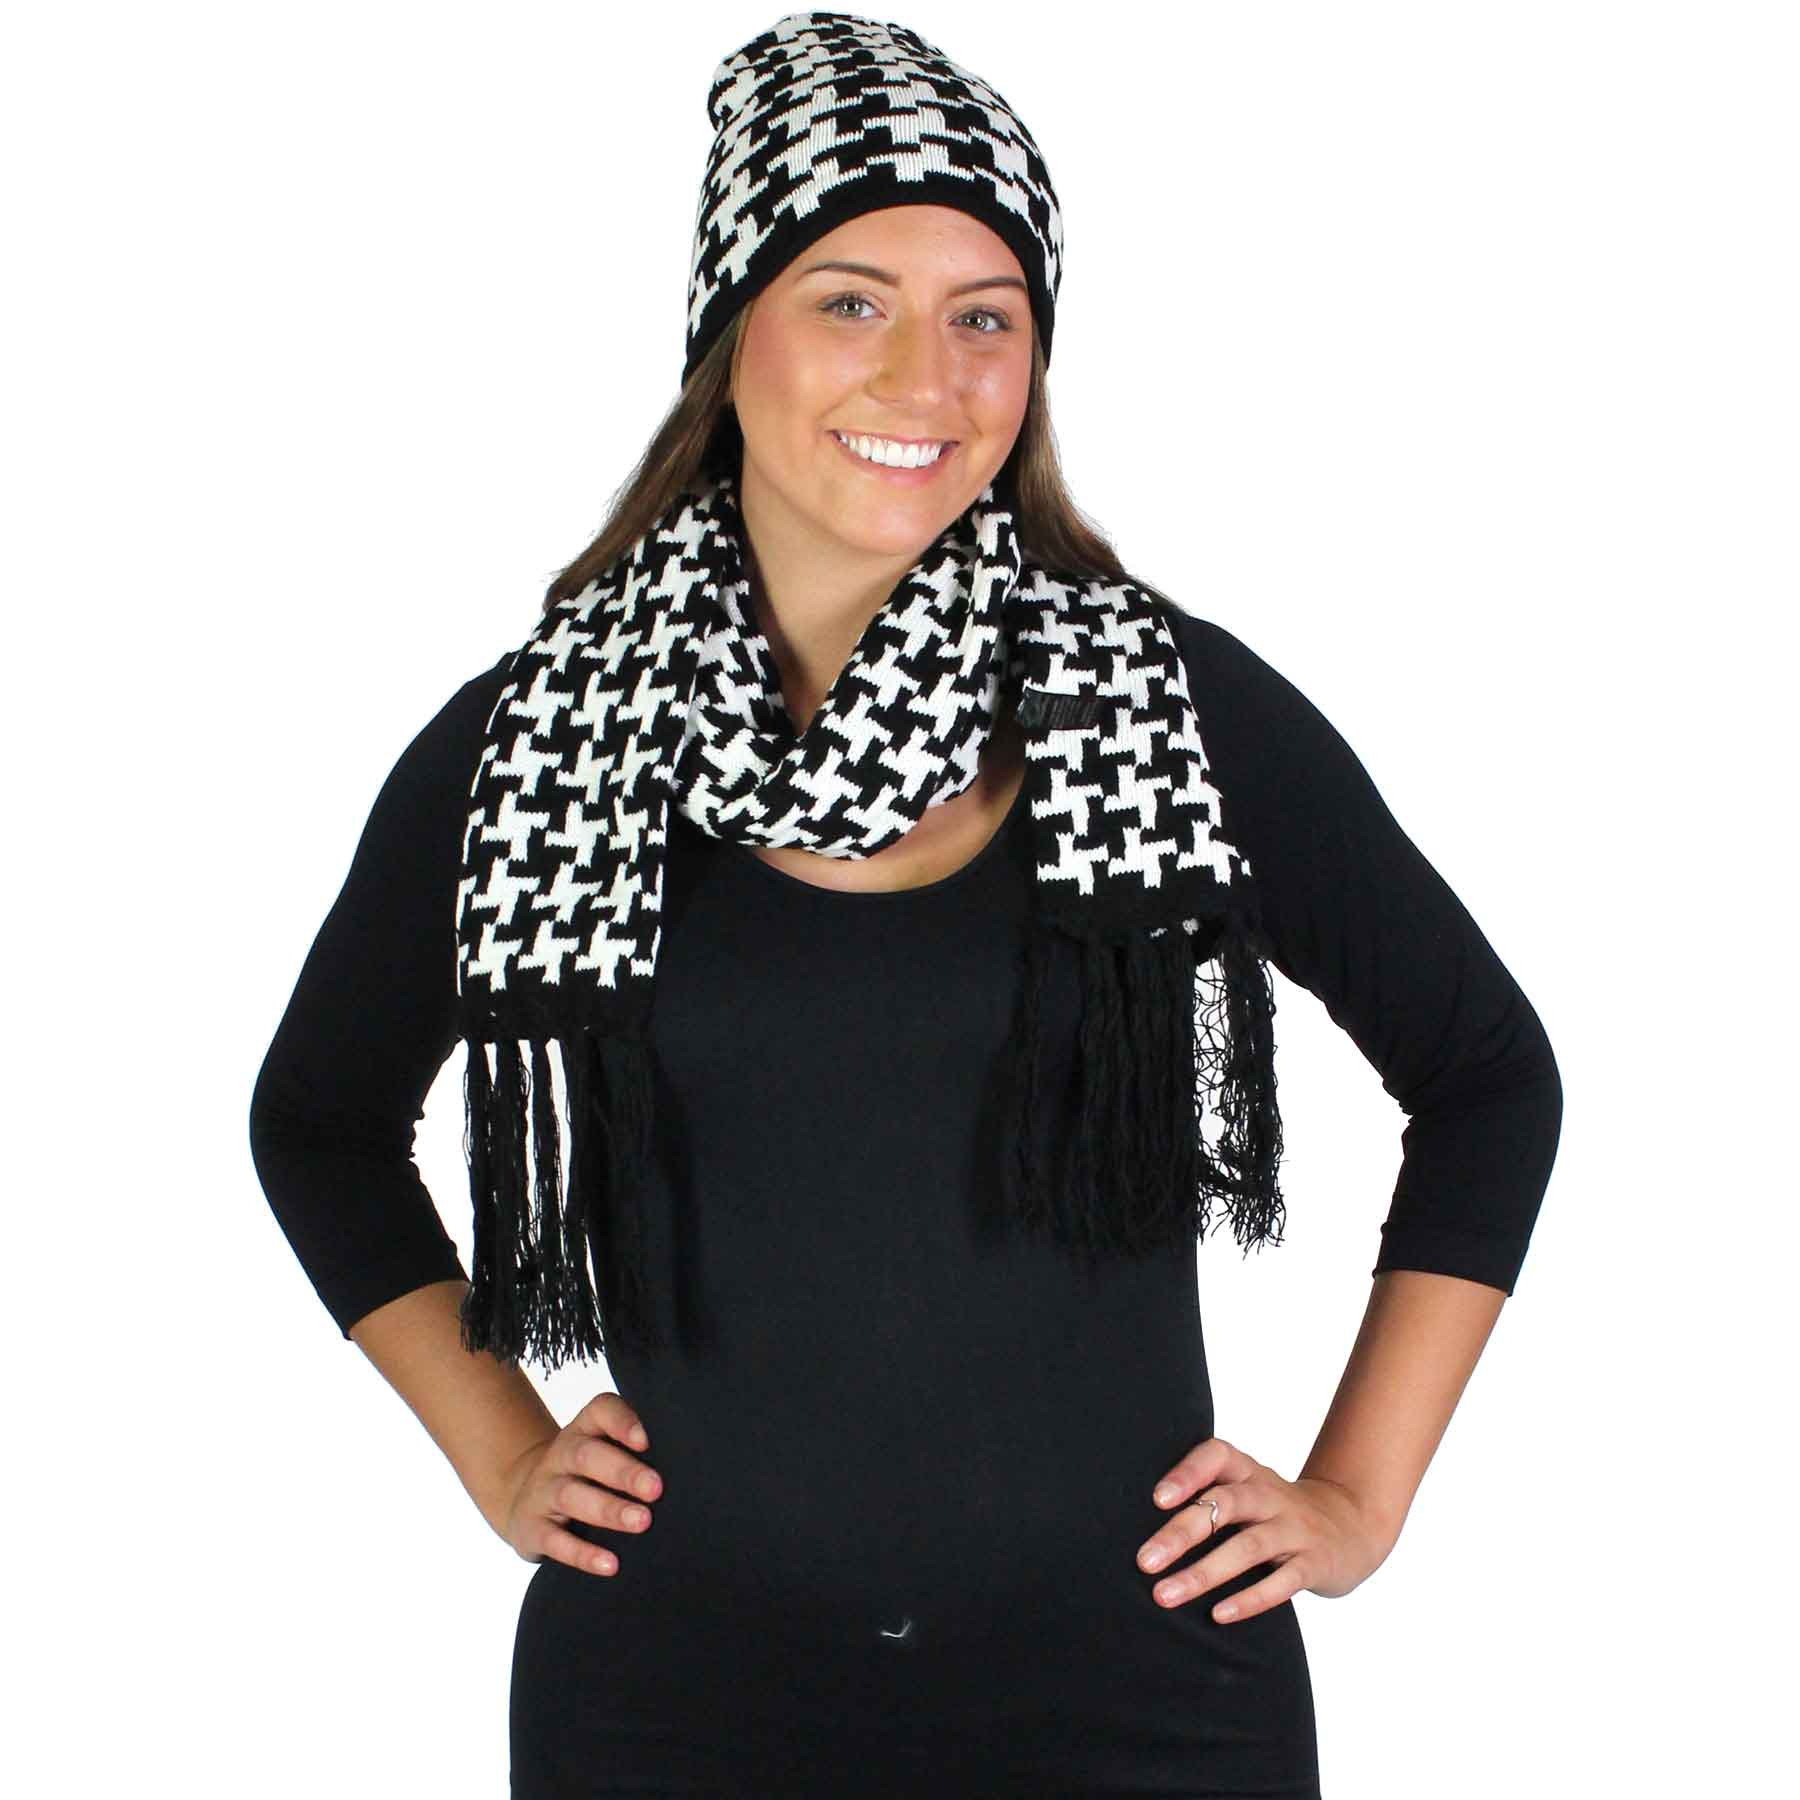 Scarf & Hat Set - Acrylic Black & White